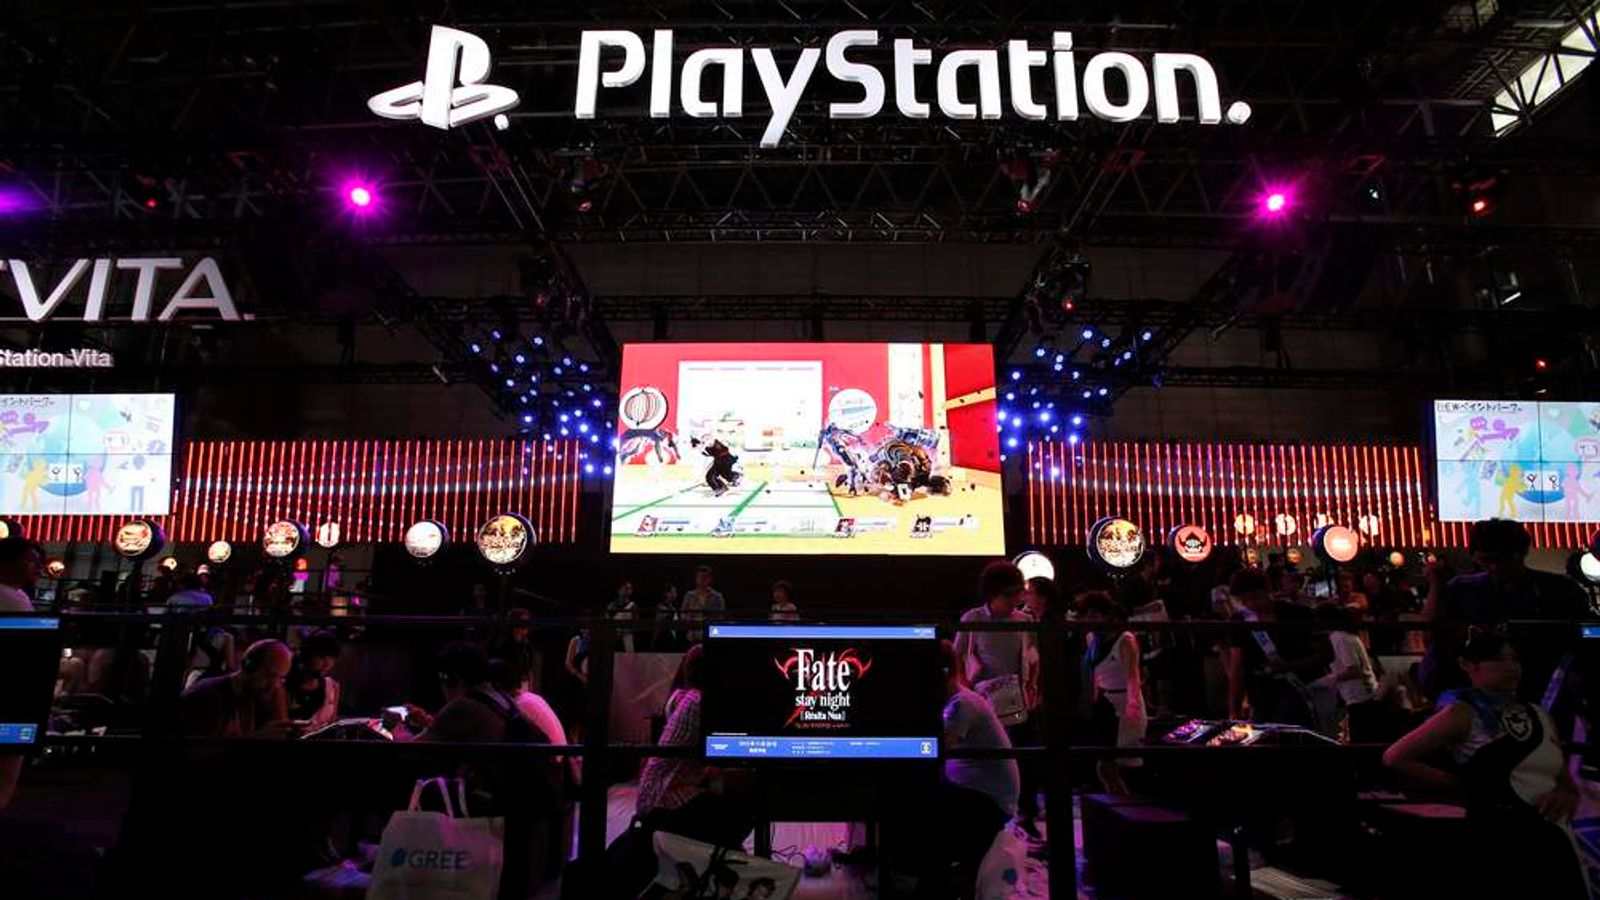 Visitors try out new game software on Sony's PlayStation Vita handheld gaming device at Tokyo Game Show in Chiba